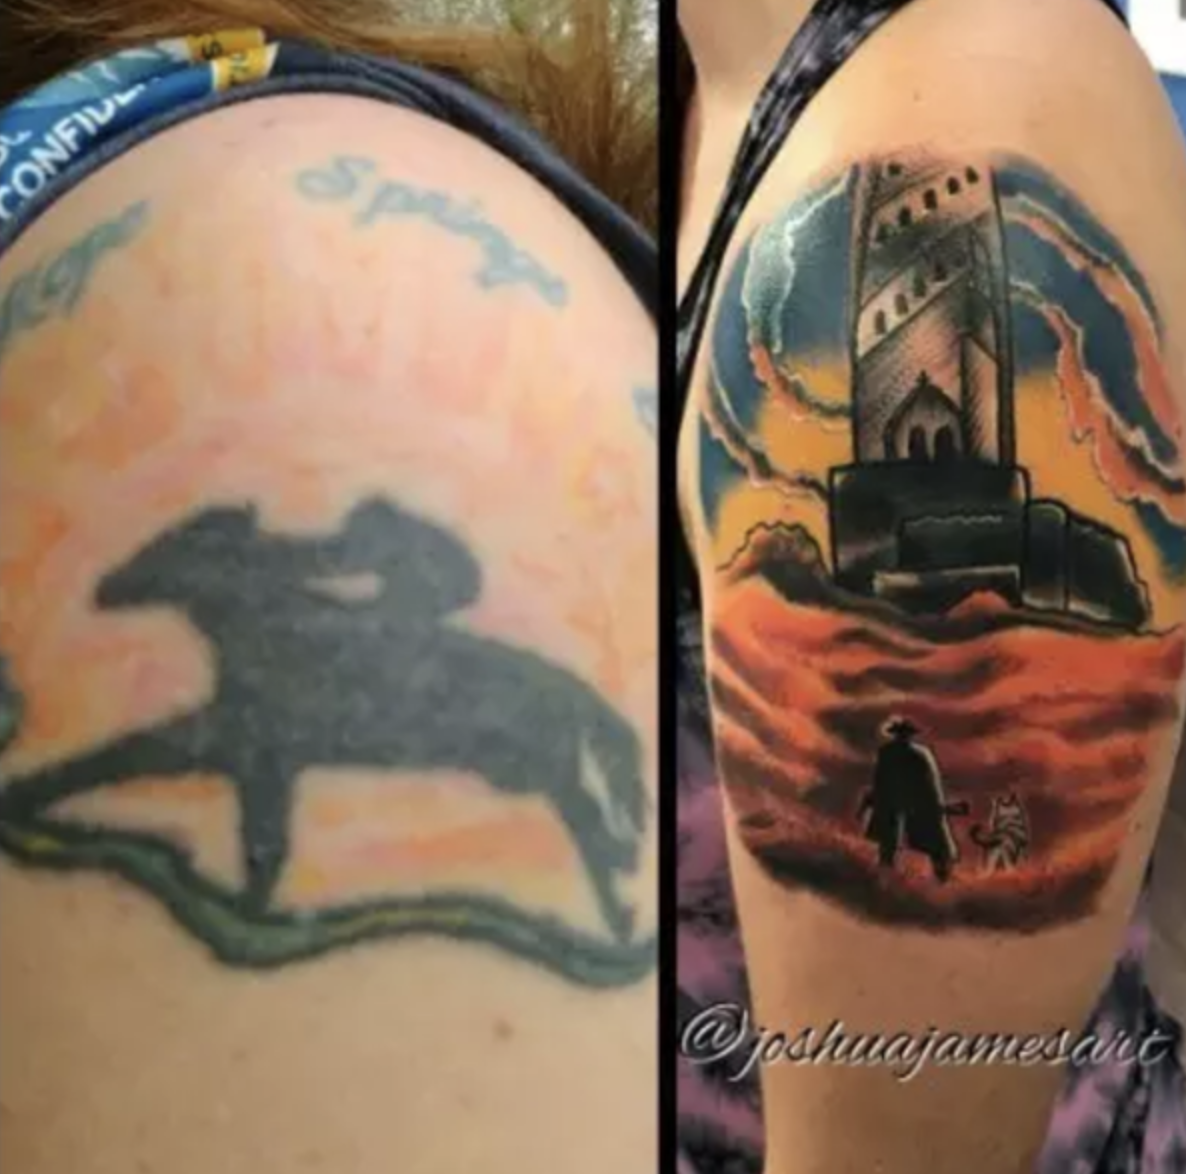 A botched tattoo of a race horse and its cover-up of a Dark Tower